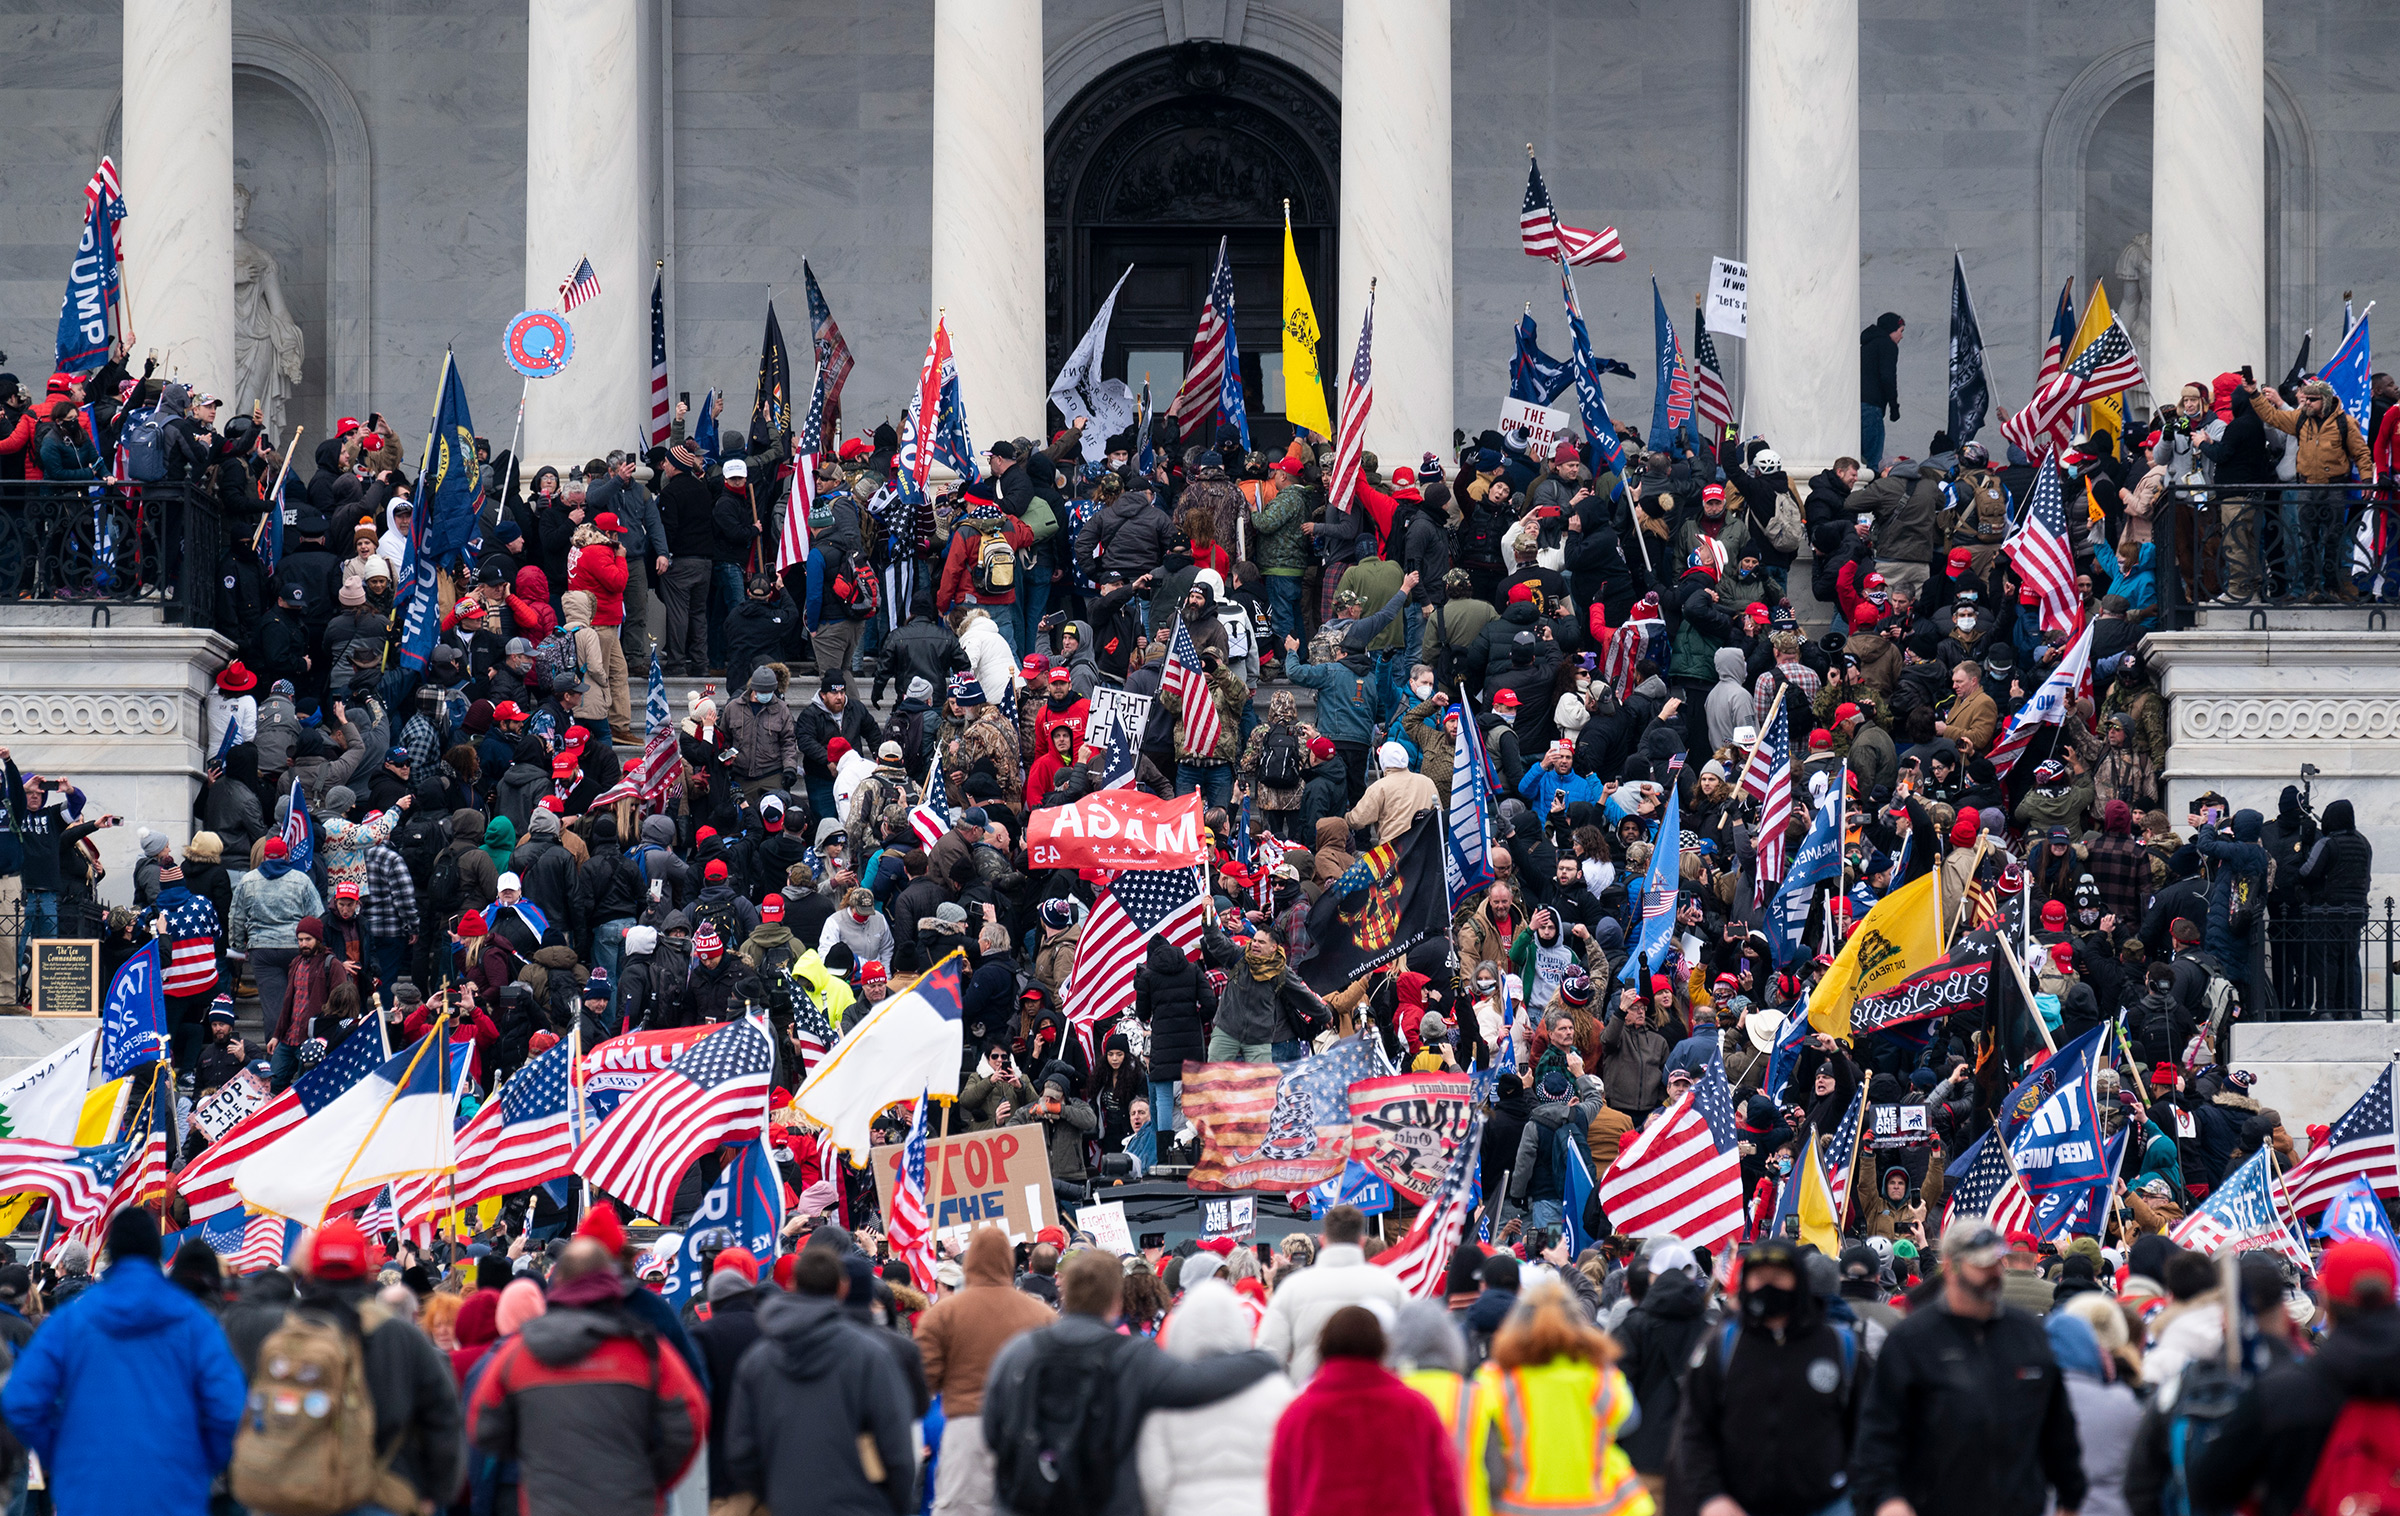 Trump supporters take over the steps of the U.S. Capitol as the Congress works to certify the electoral college votes on Jan. 6, 2021.